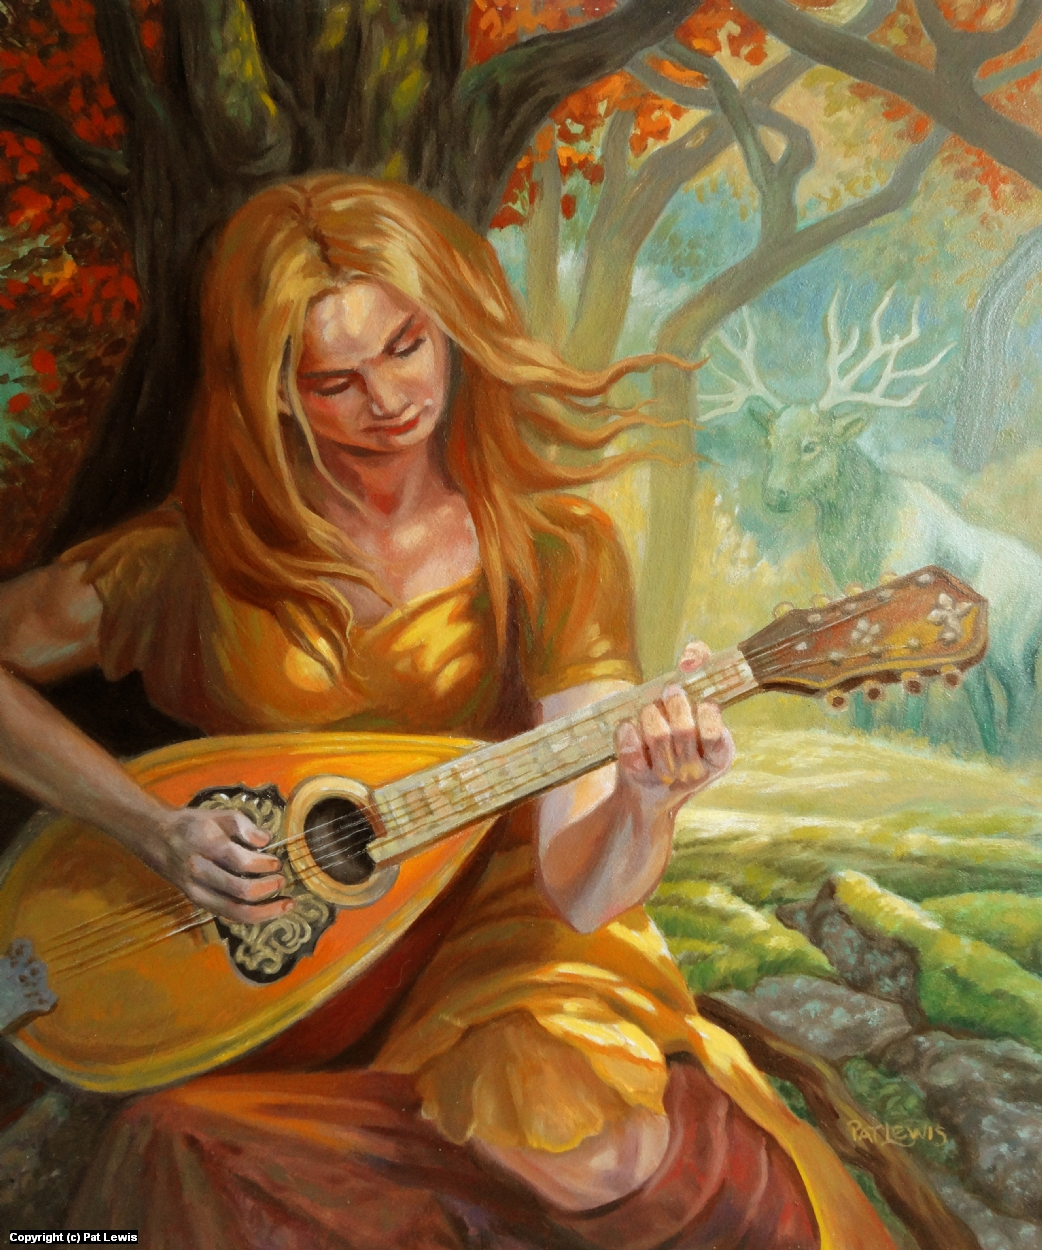 Music of the Forest Artwork by Pat morrissey-Lewis